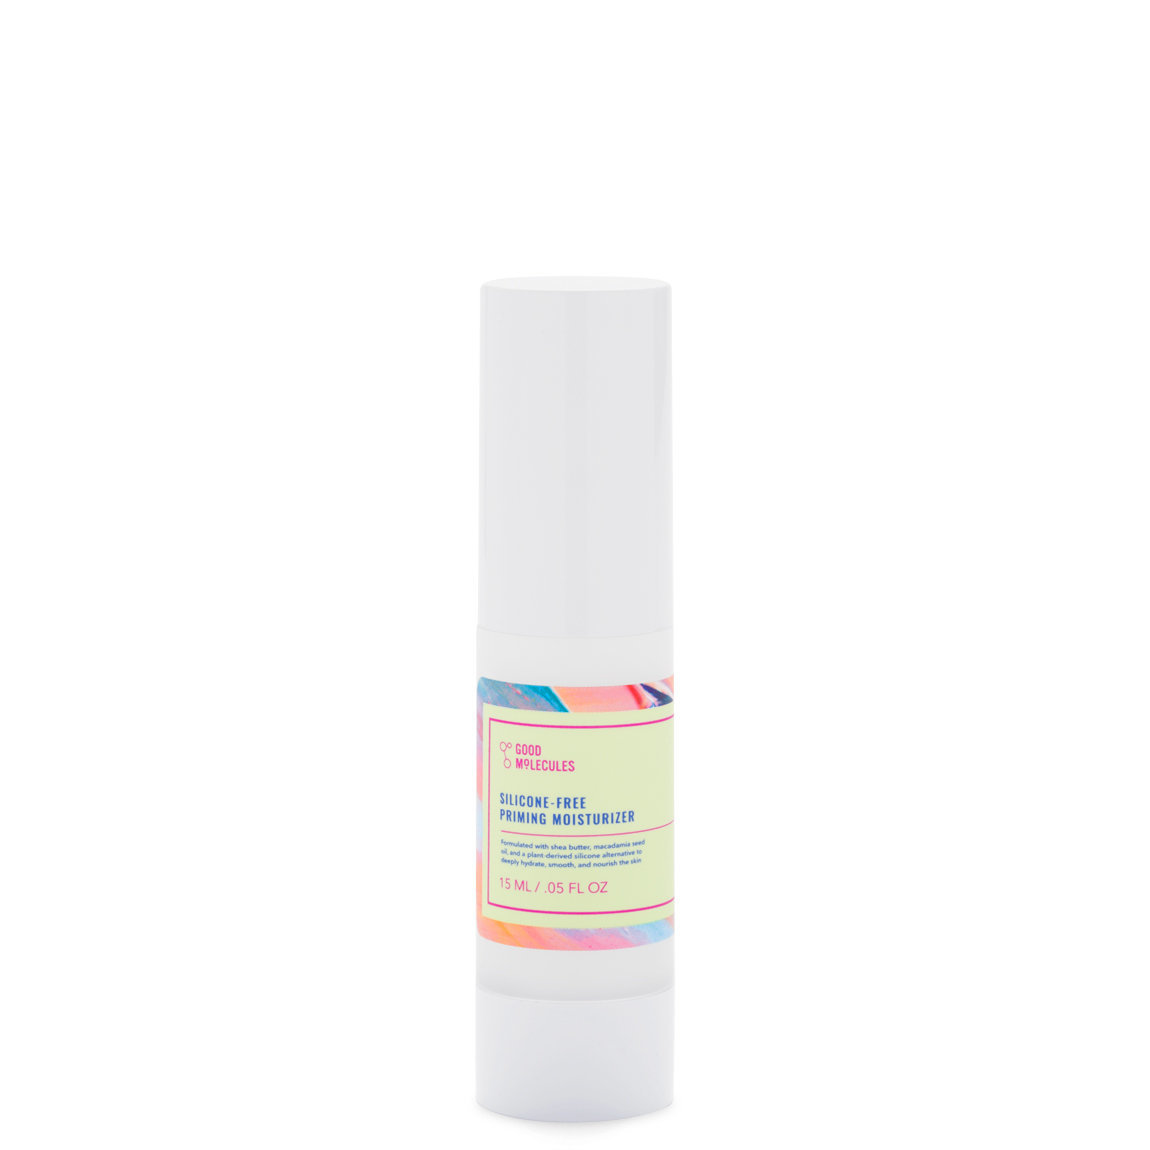 Good Molecules Silicone-Free Priming Moisturizer 15 ml product swatch.